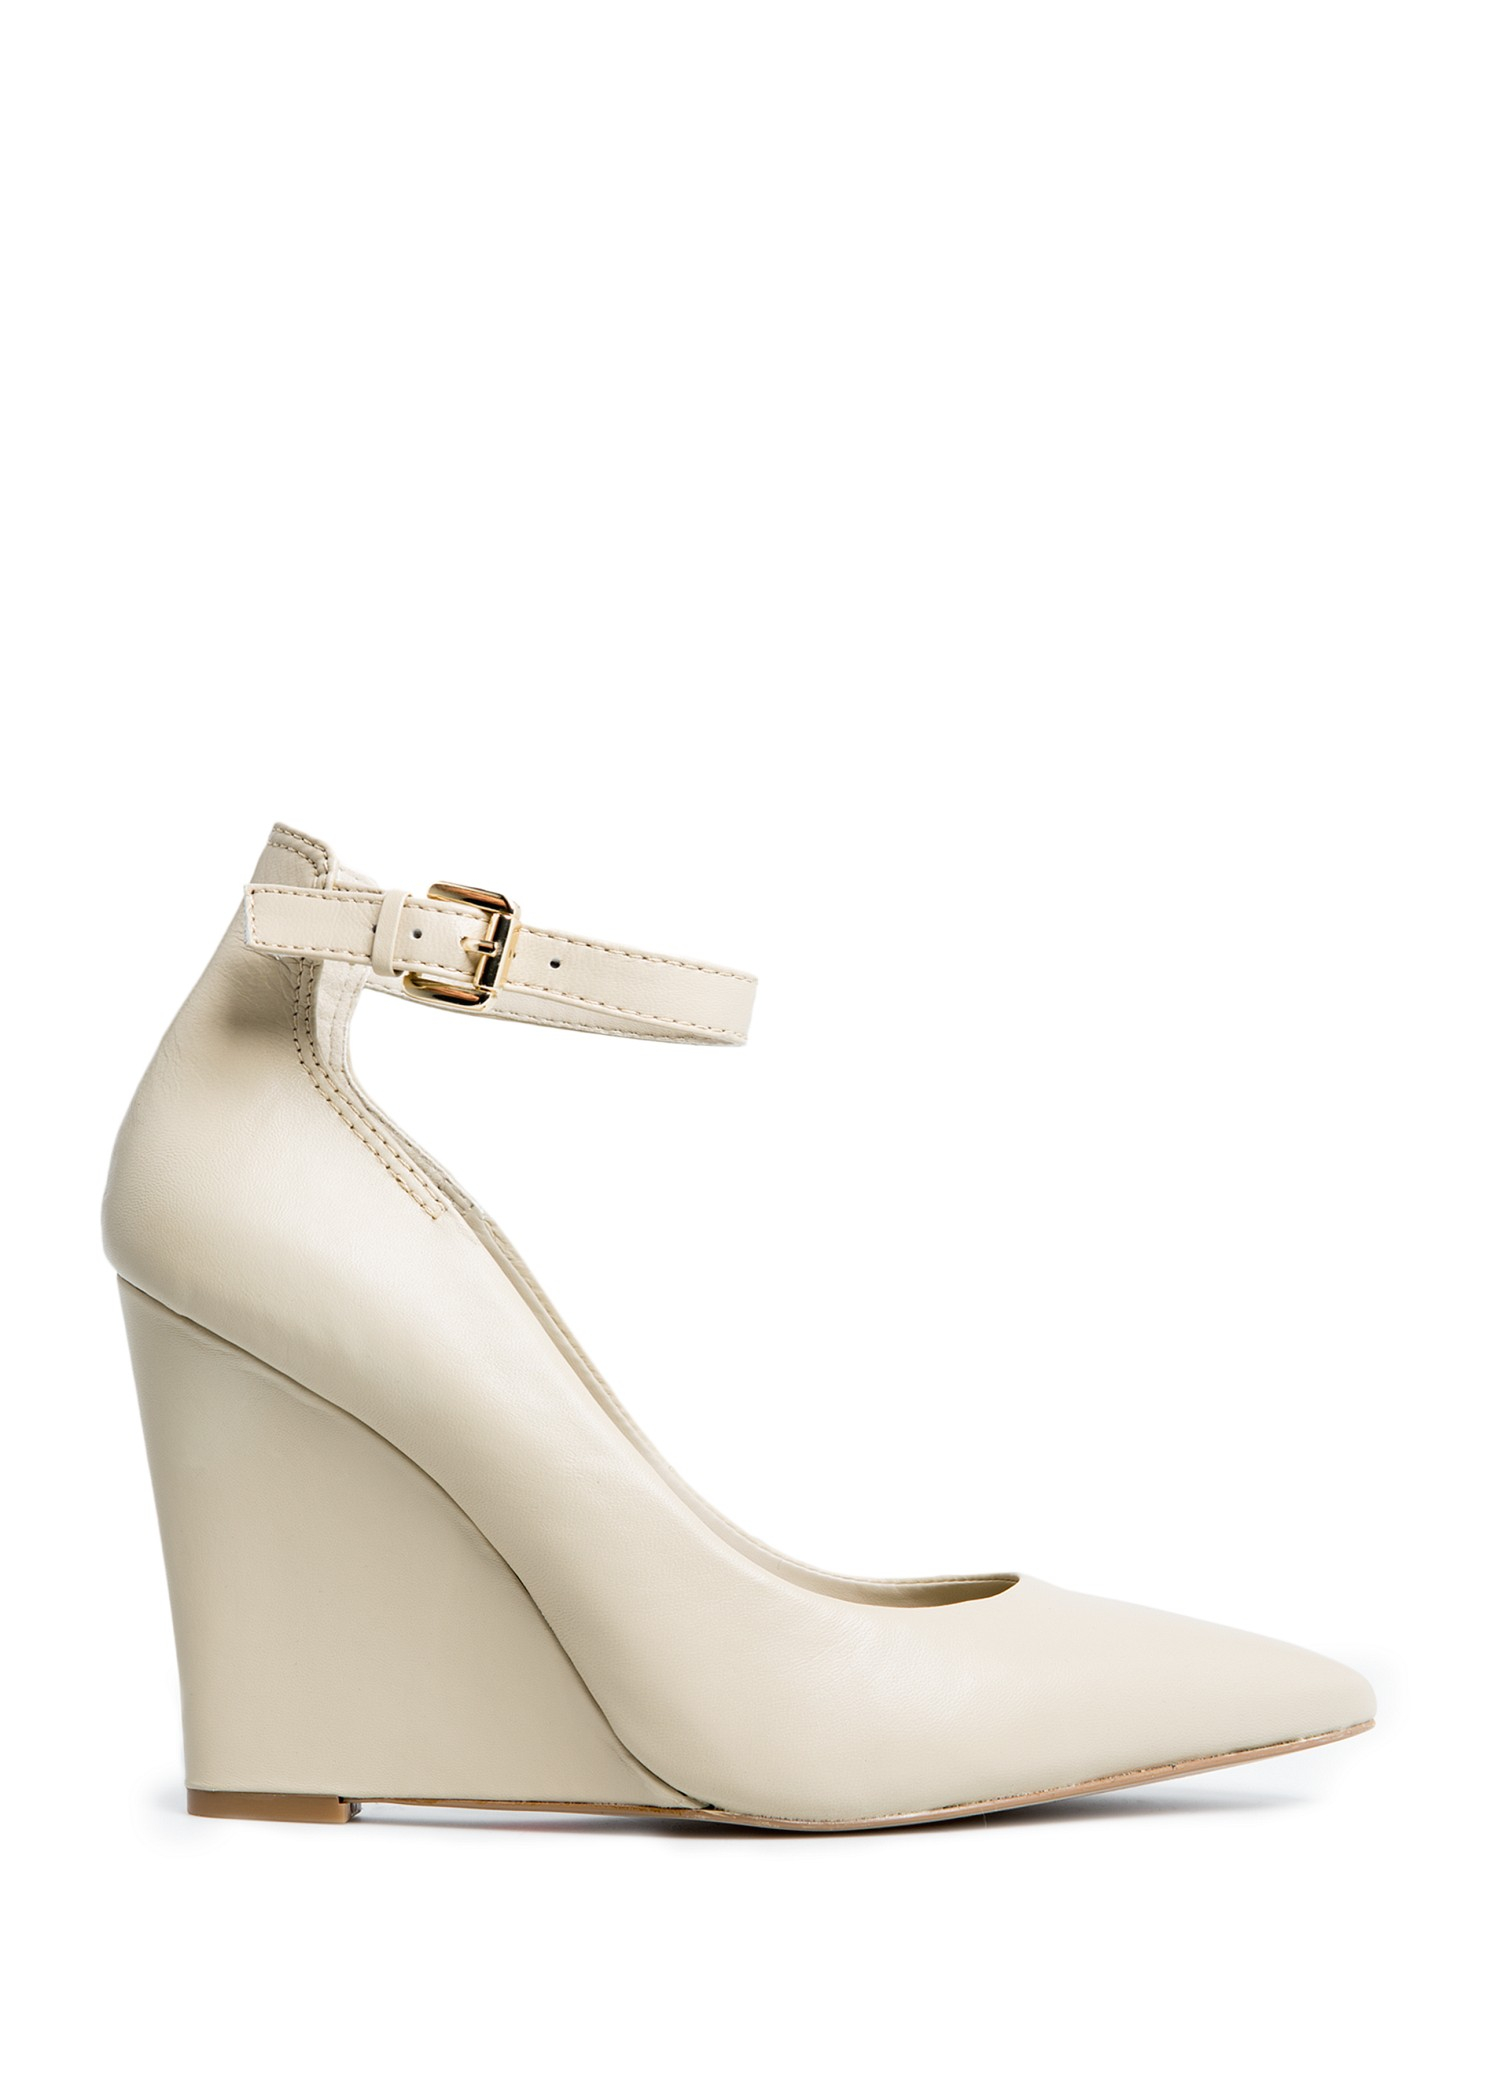 Lyst - Mango Touch Ankle Strap Leather Wedge Shoes in White